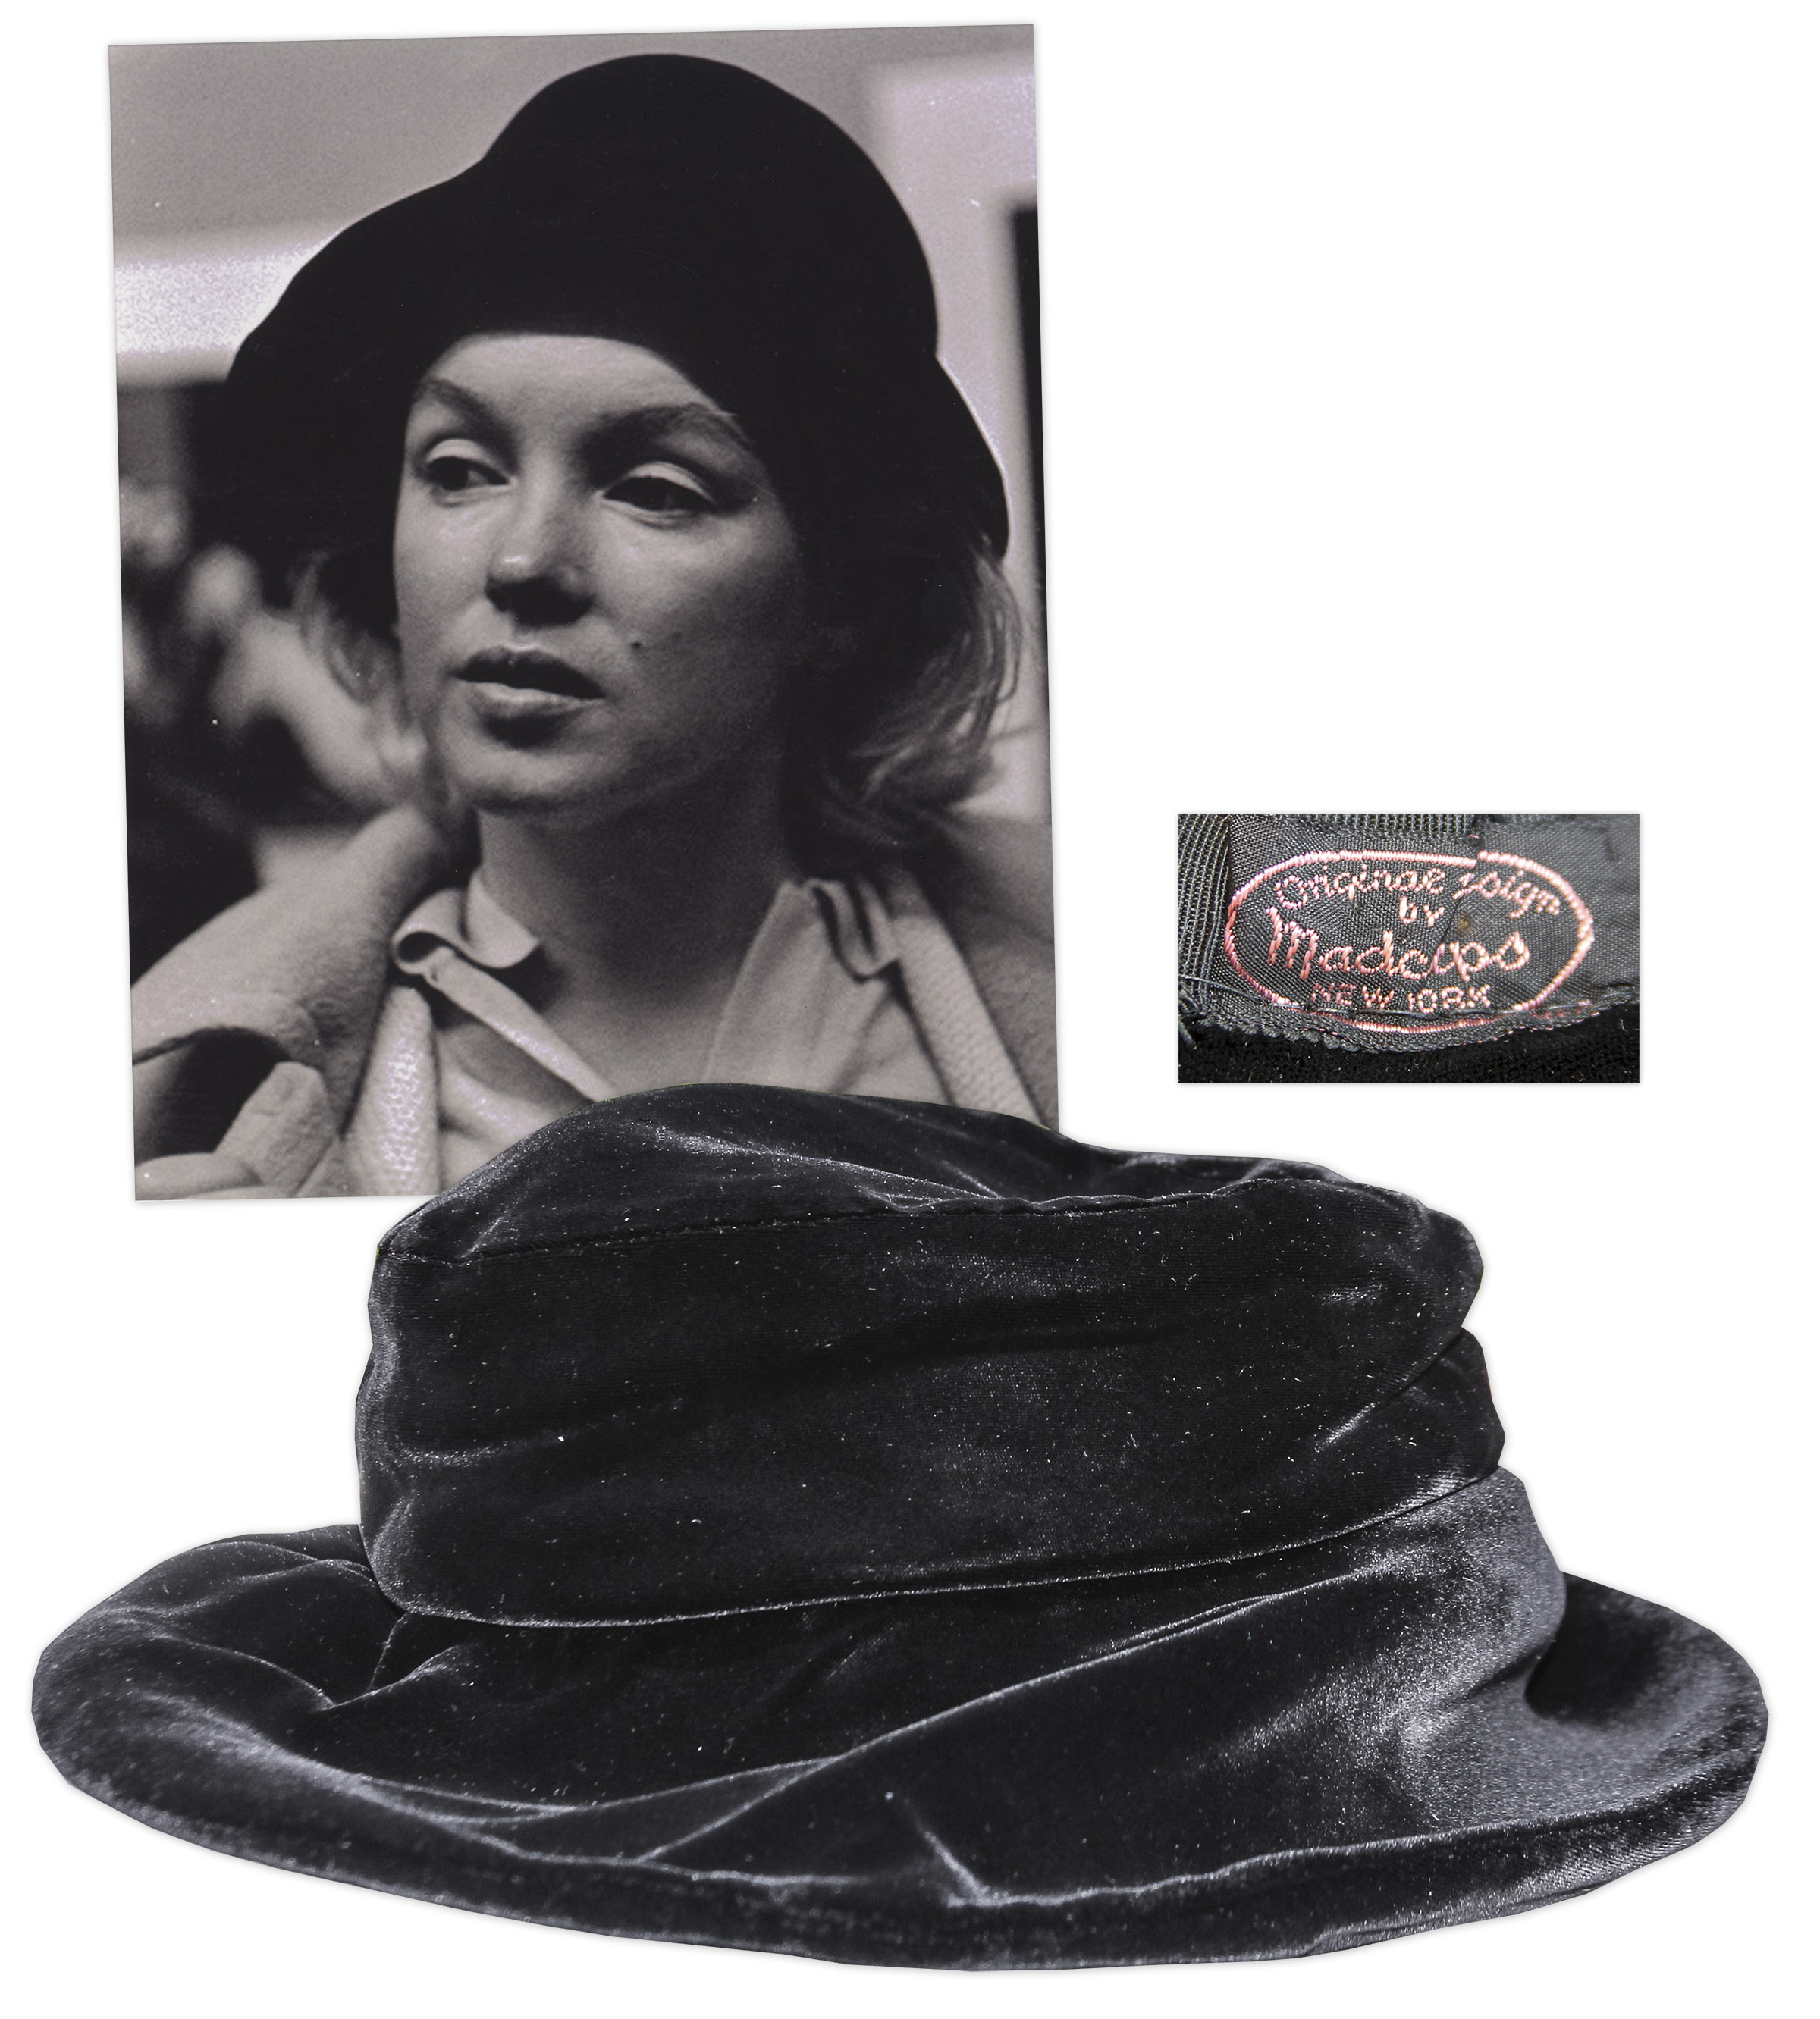 46870e4a93d25 Marilyn Monroe Personally Owned Black Velvet Hat -- Includes Photograph of  the Iconic Hollywood Star ...